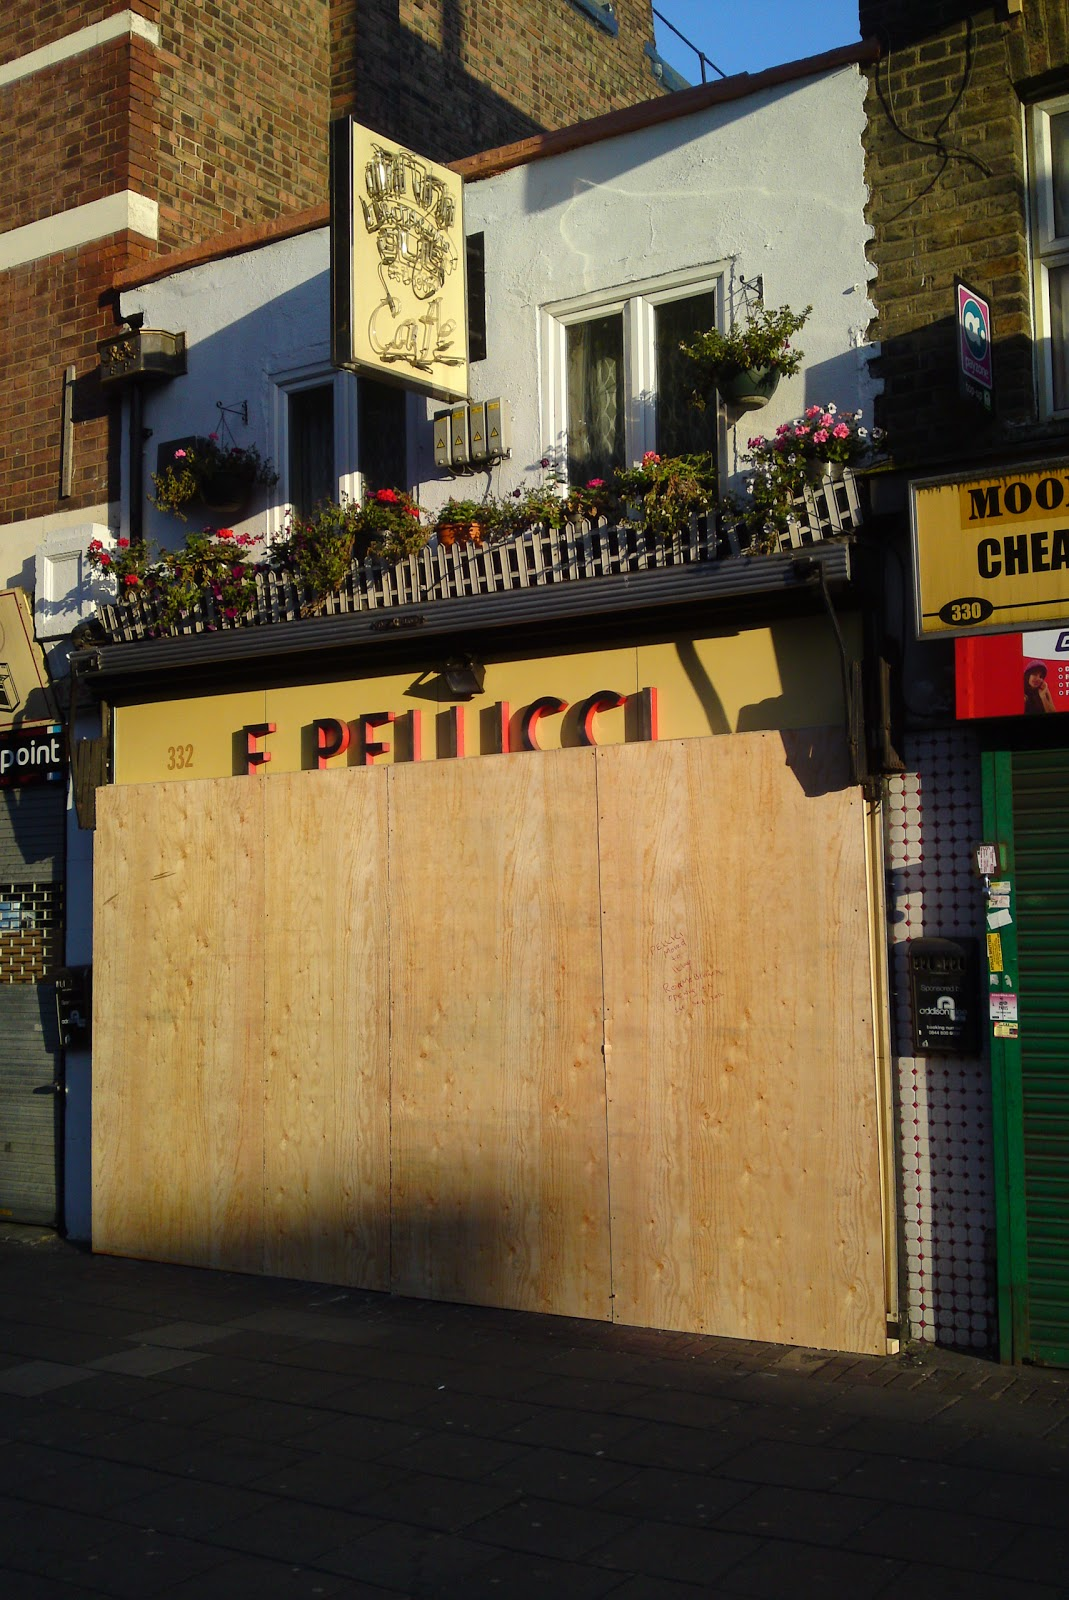 Styling and salvage east london under fire bethnal green for Furniture xpress bethnal green